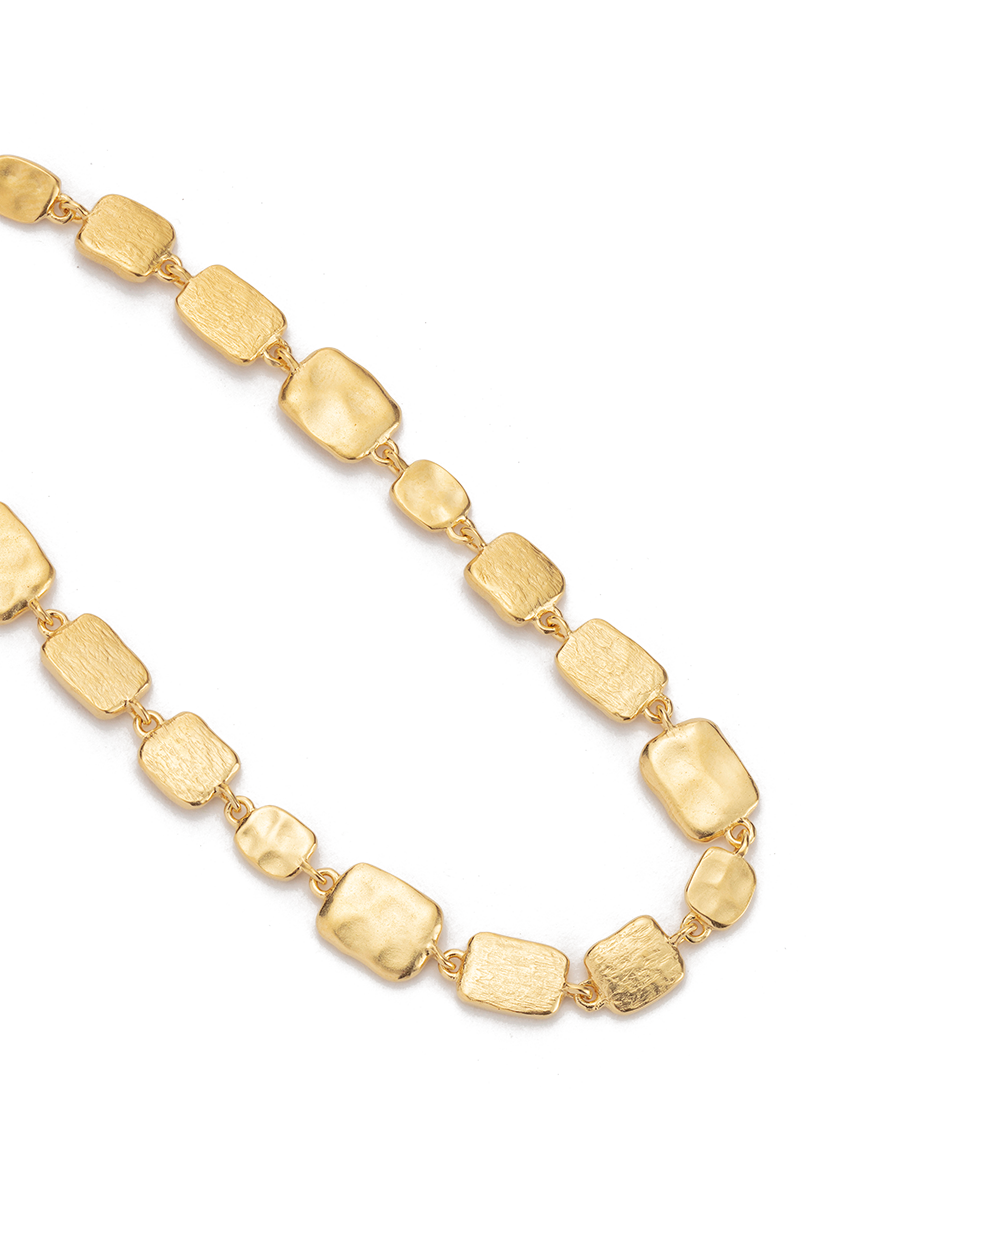 CASCADE BRACELET (18K-GOLD-PLATED) - SIDE